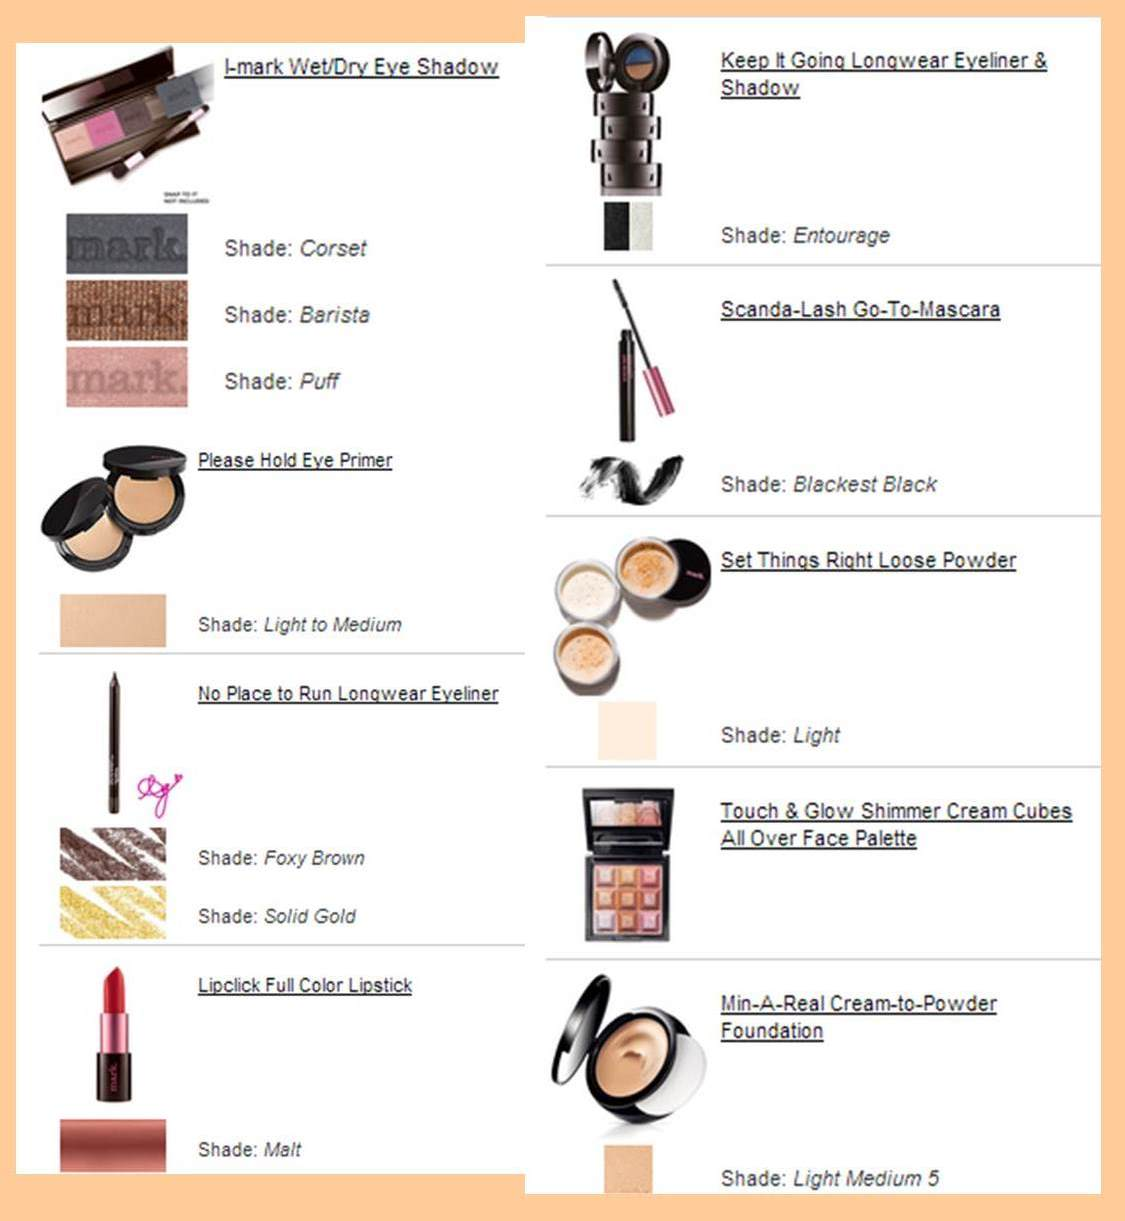 Erica's Fashion & Beauty: Get The Look